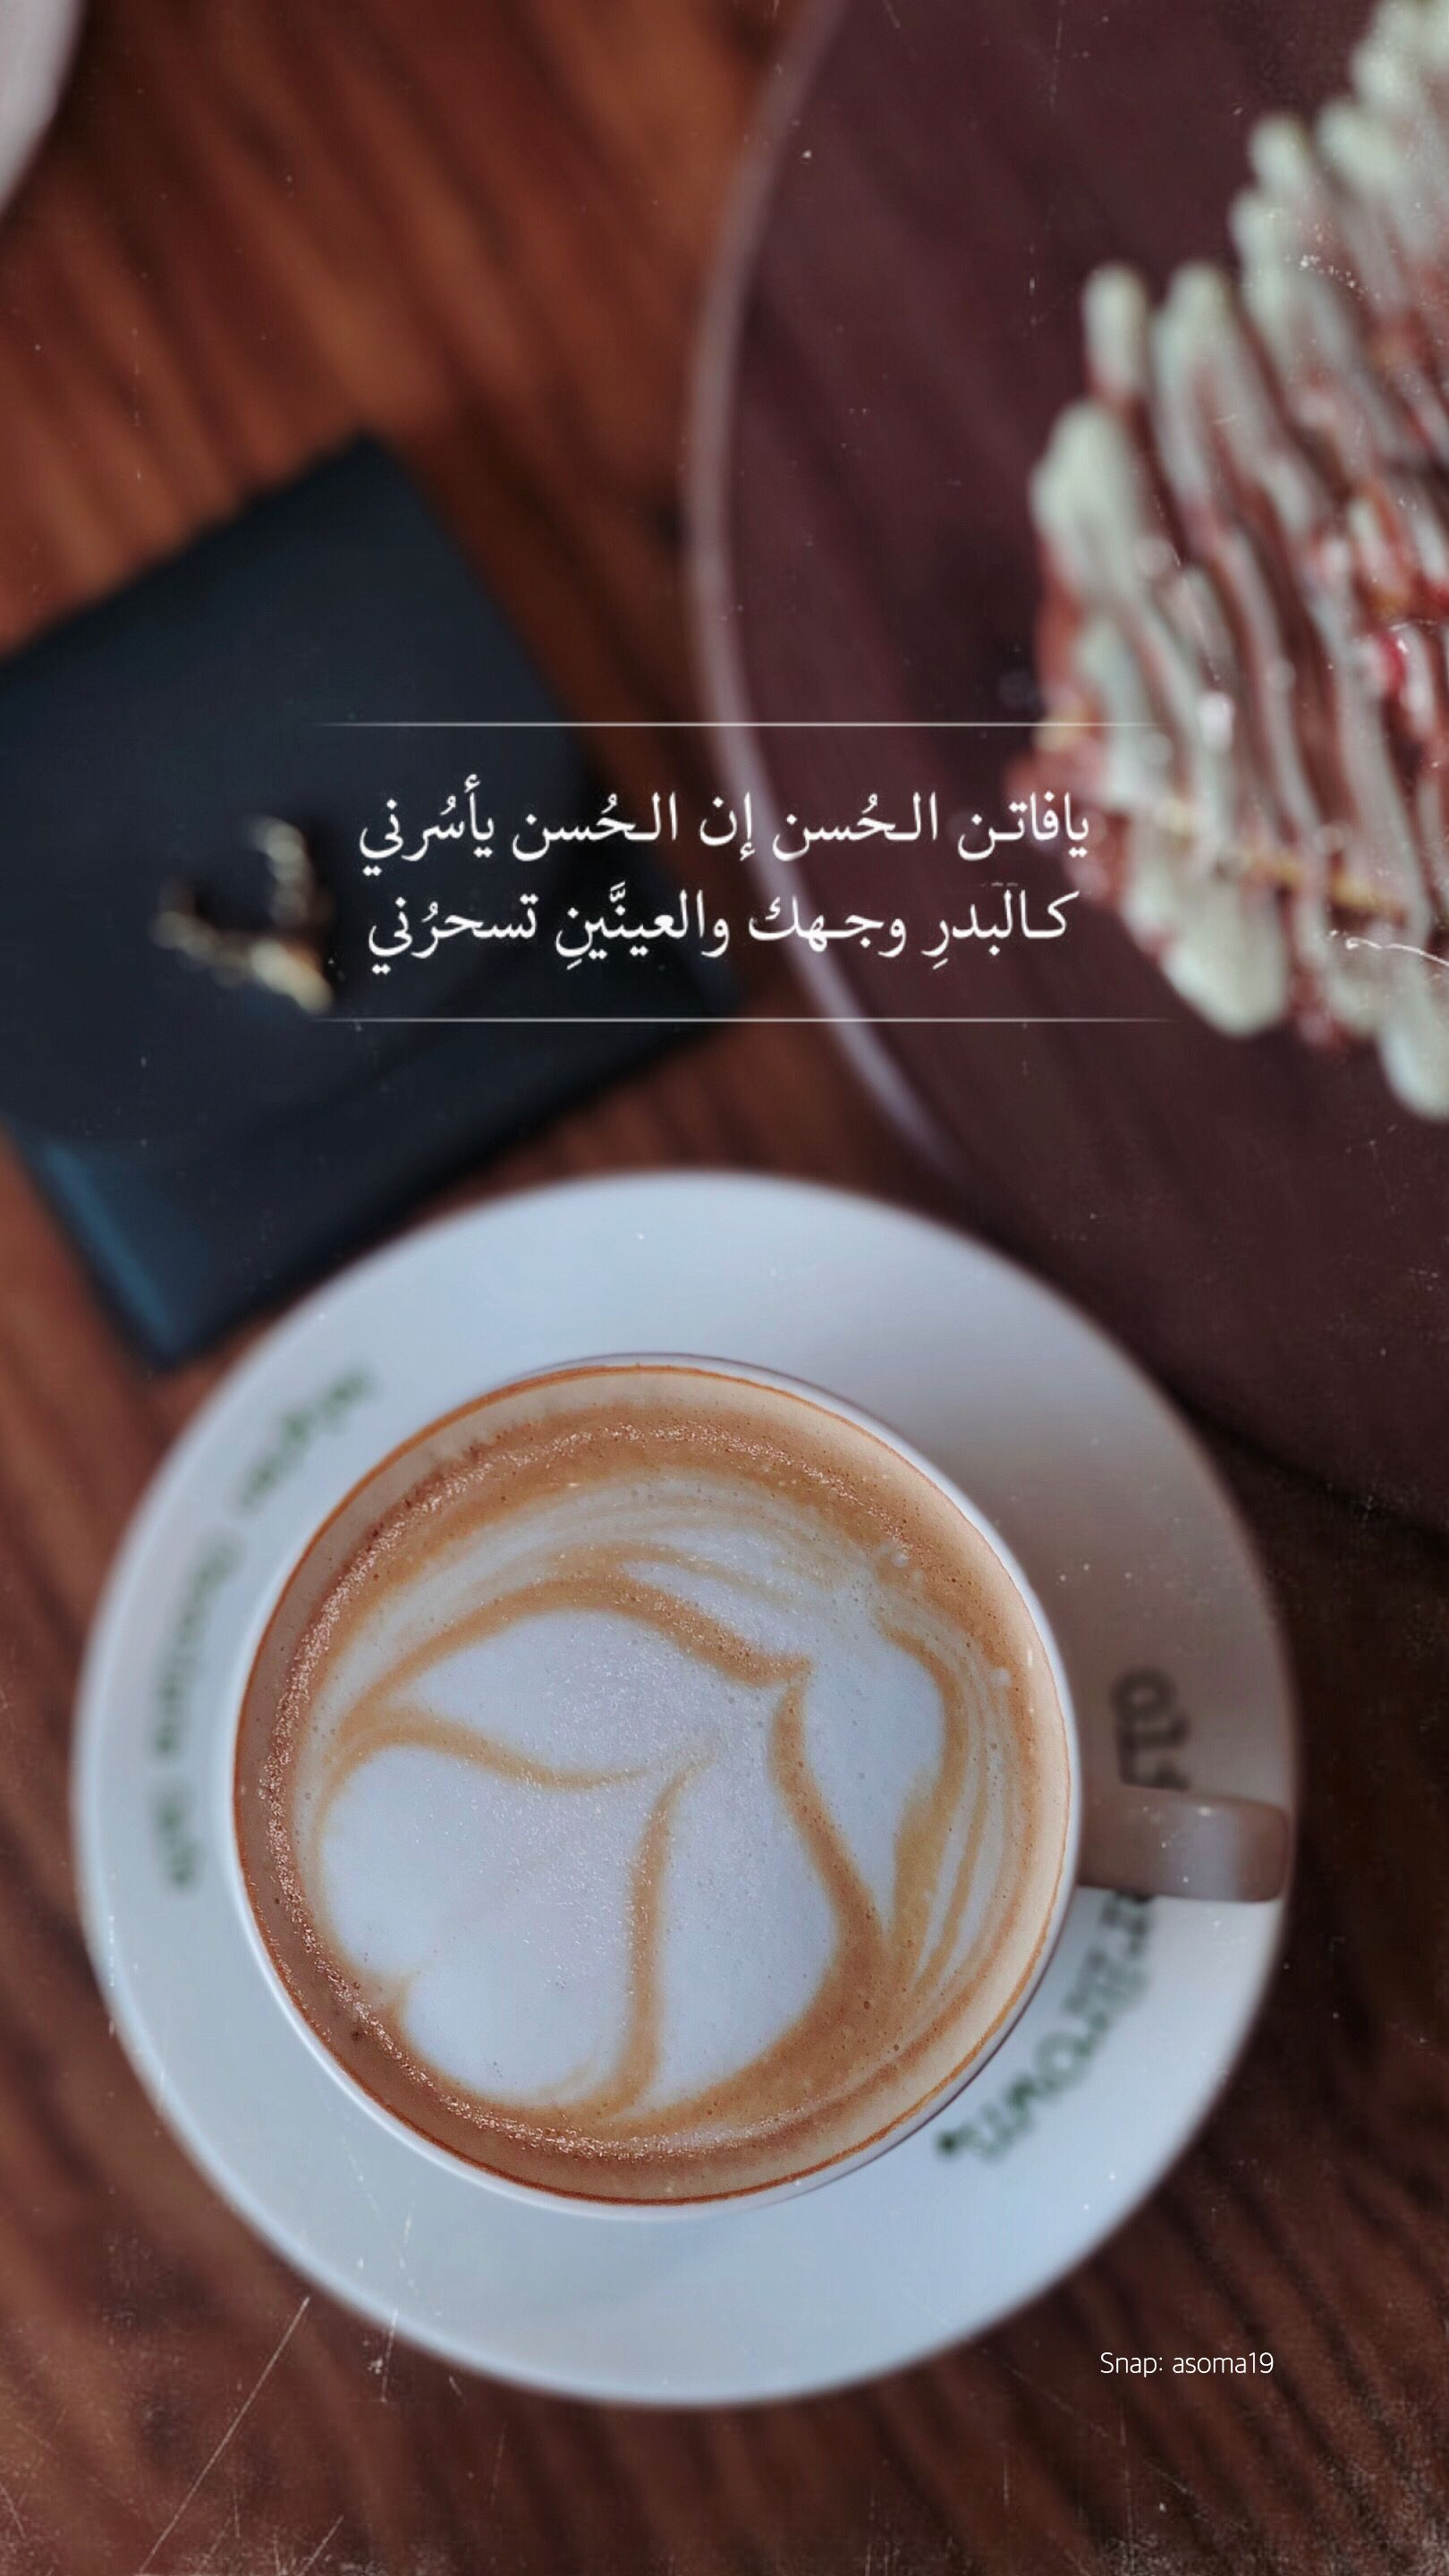 Pin By Semsem On يوميات Coffee Wallpaper Iphone Coffee Quotes Coffee Stickers